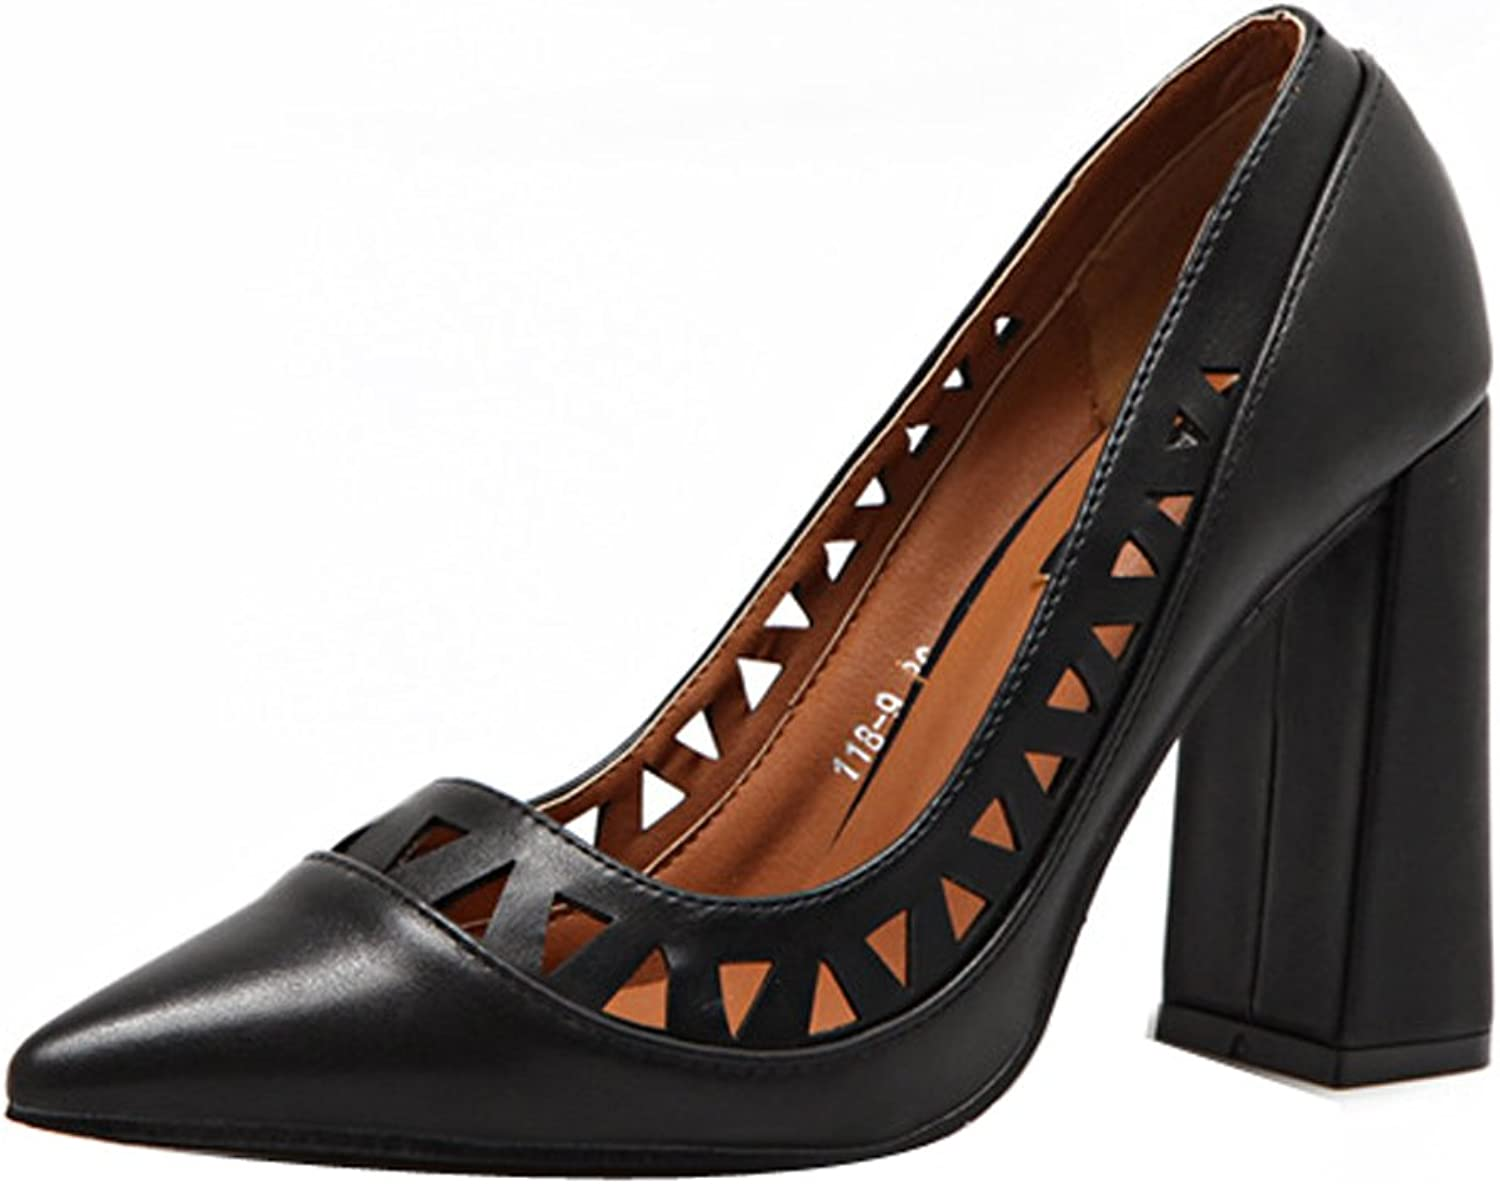 Ladola Womens Slip-Resistant High-Heel Closed-Toe Solid Urethane Pumps shoes